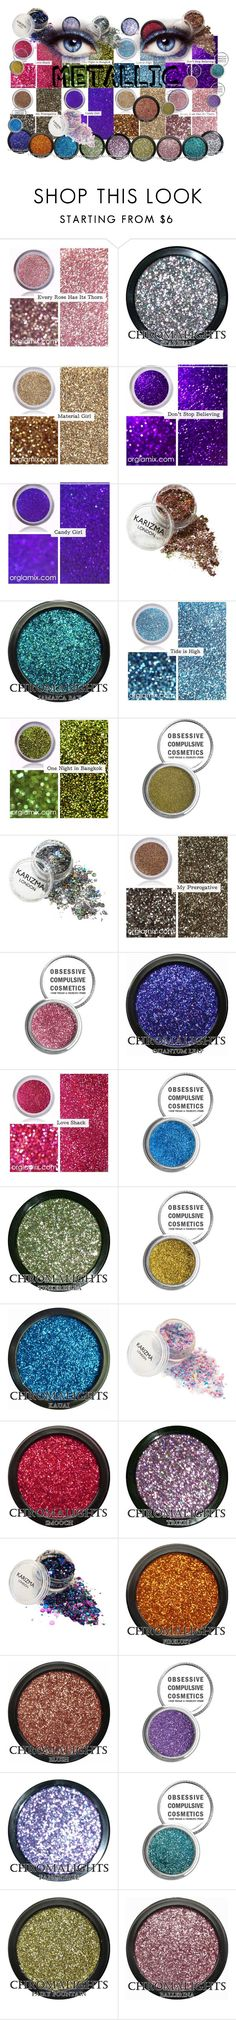 """""""Metallic Beauty"""" by lkriss ❤ liked on Polyvore featuring beauty, Material Girl, Obsessive Compulsive Cosmetics, Beauty, metallic and metallicmakeup"""